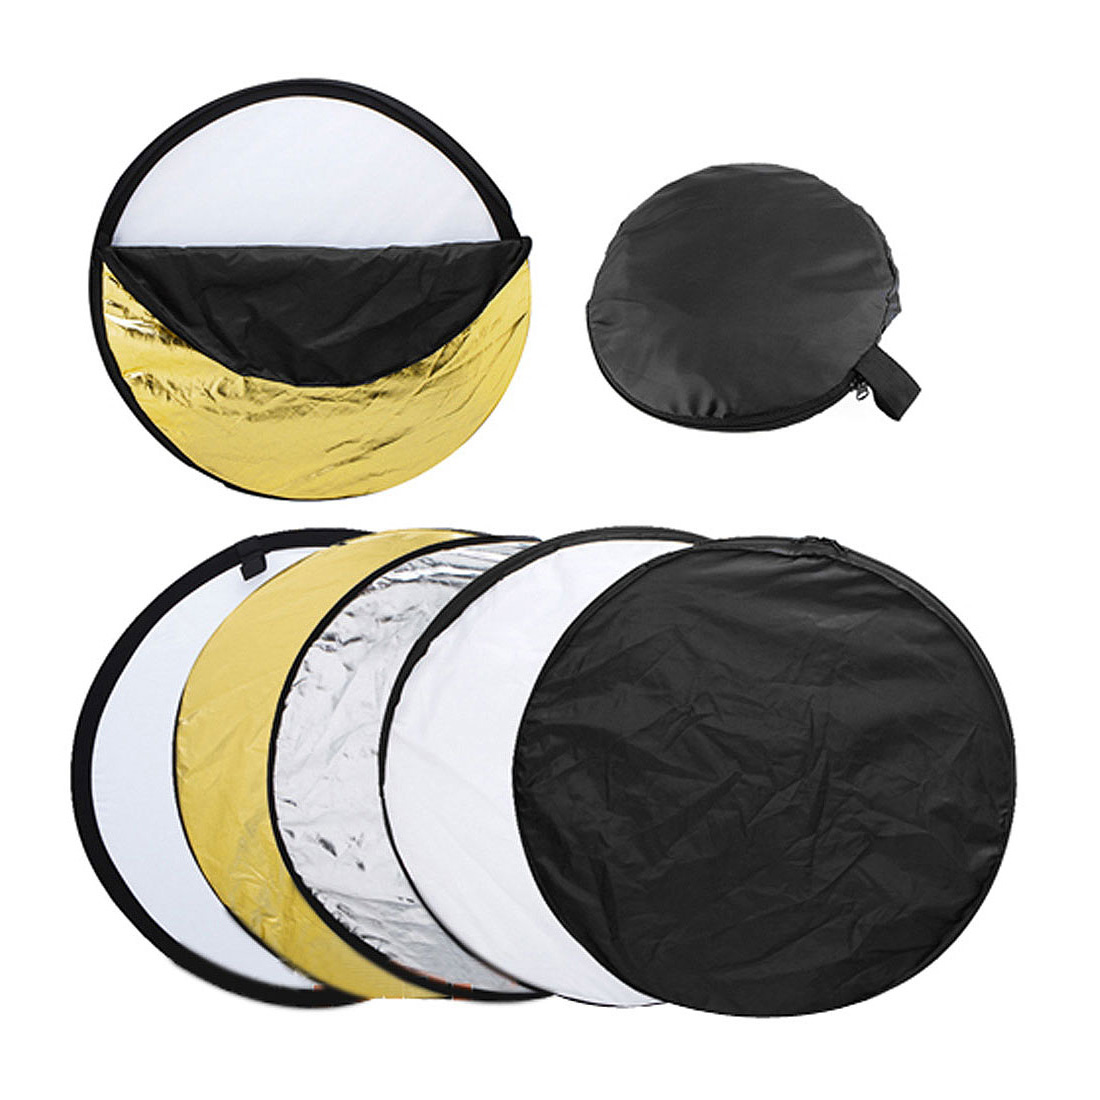 56cm 5-in-1 Photography Studio Multi Photo Disc Collapsible Light Reflector